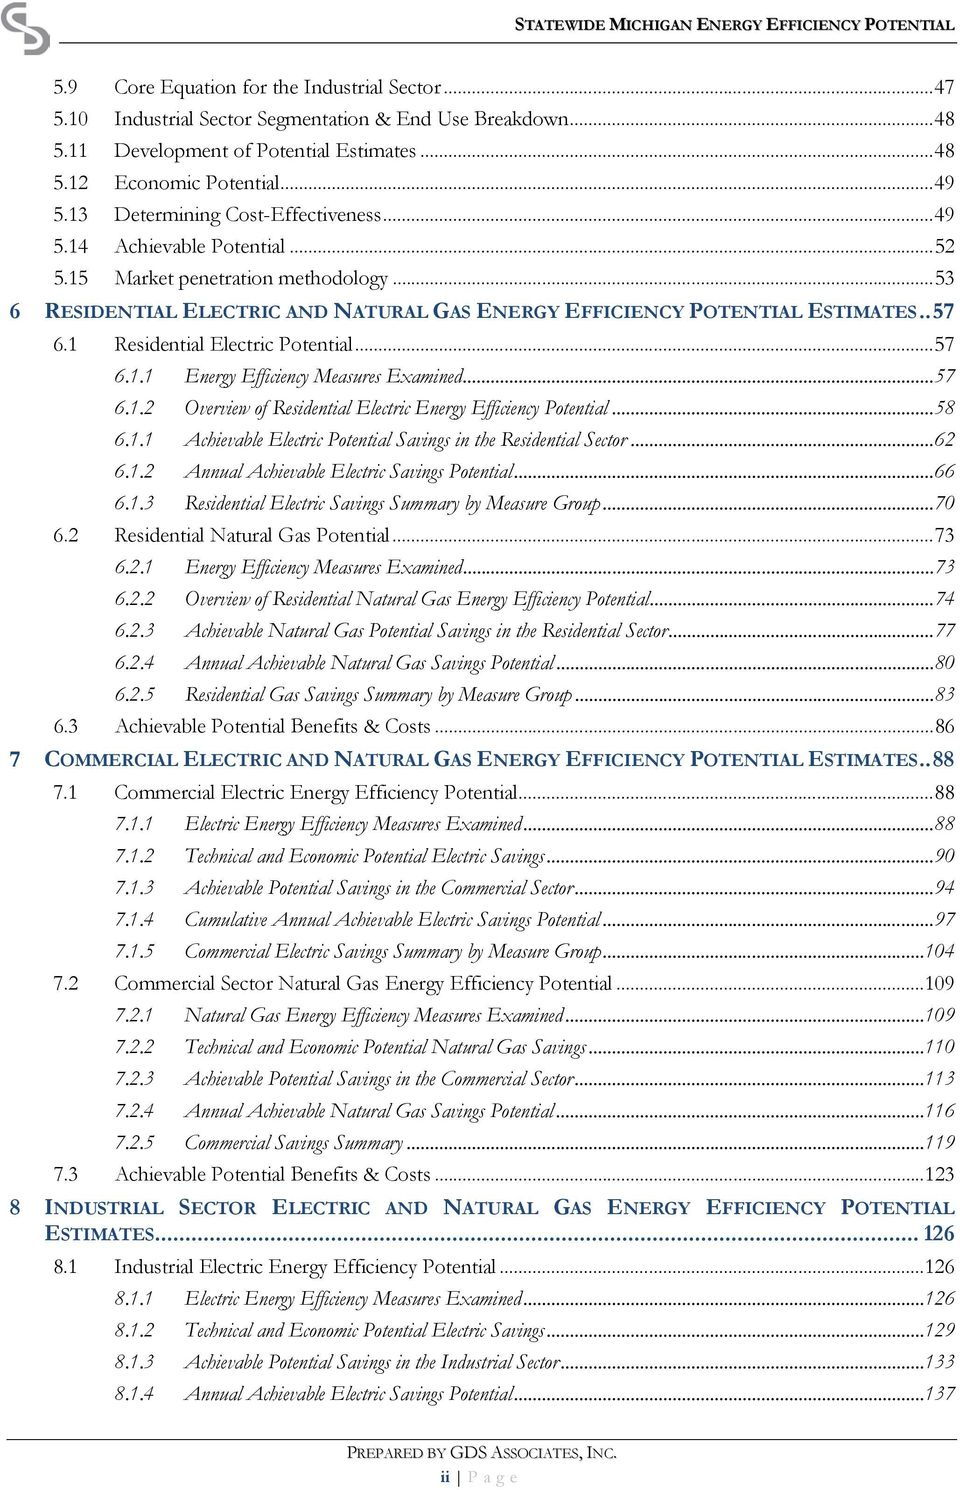 1 Residential Electric Potential... 57 6.1.1 Energy Efficiency Measures Examined... 57 6.1.2 Overview of Residential Electric Energy Efficiency Potential... 58 6.1.1 Achievable Electric Potential Savings in the Residential Sector.